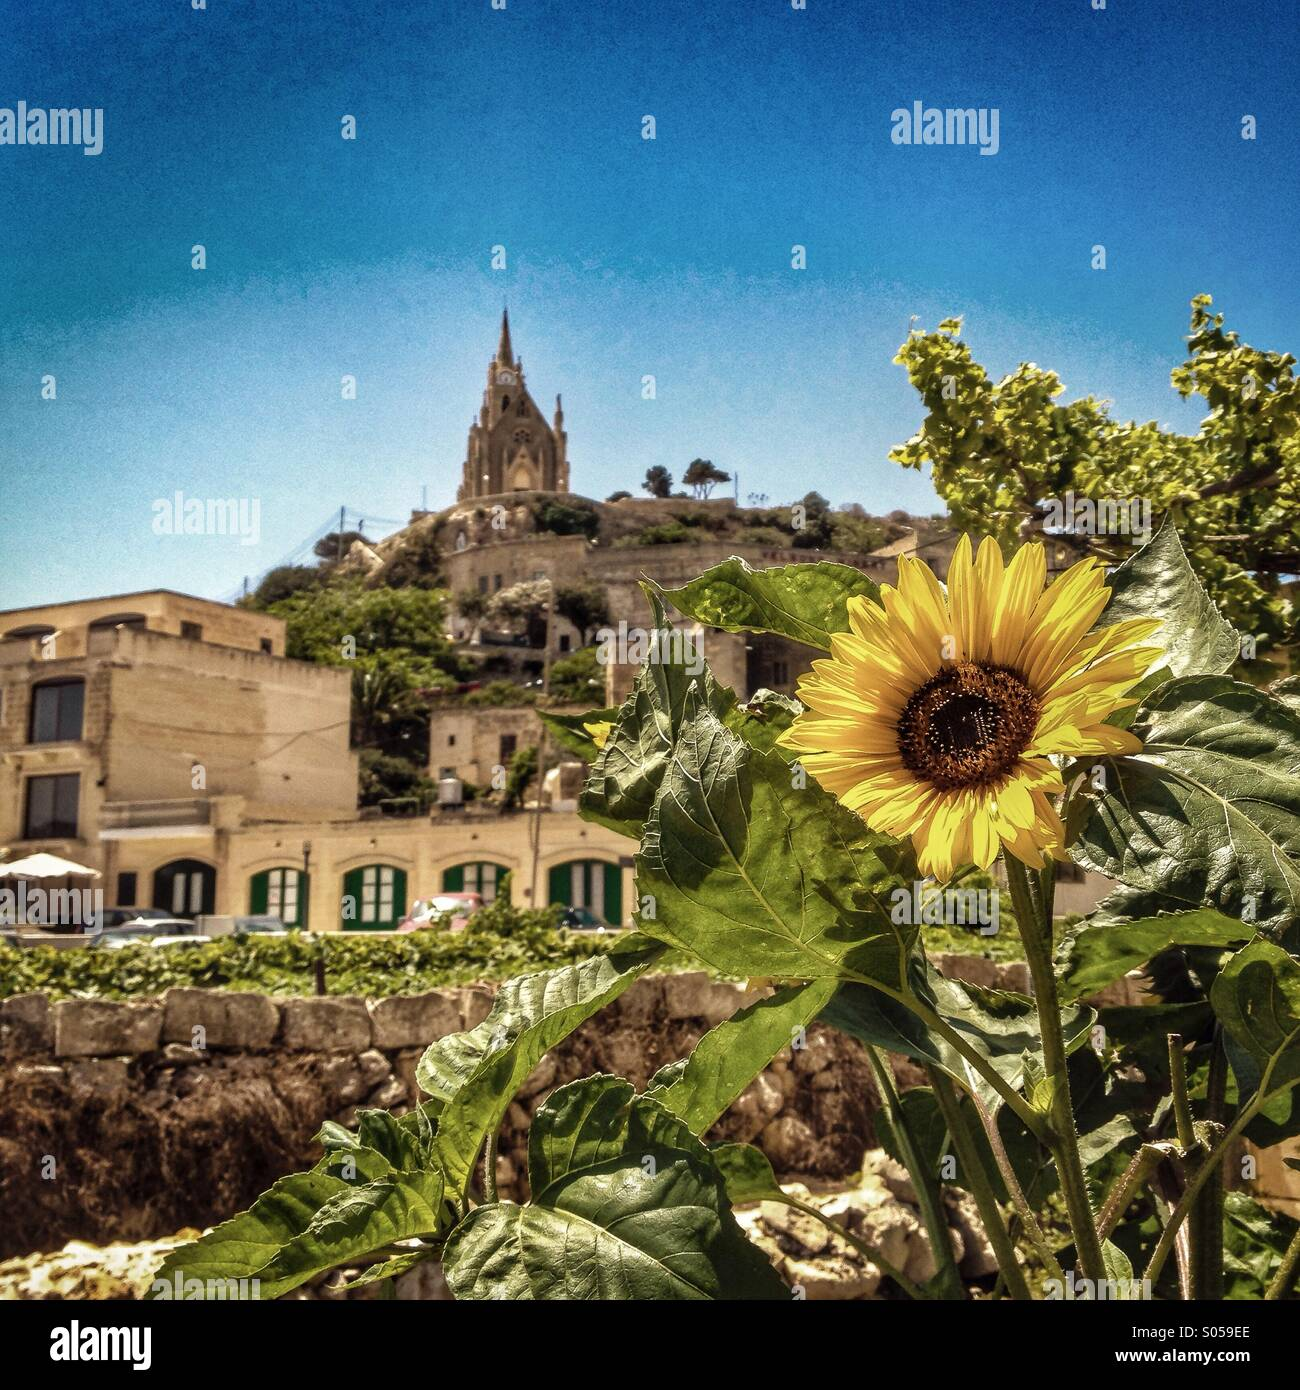 Sunflower in the harbour - Stock Image